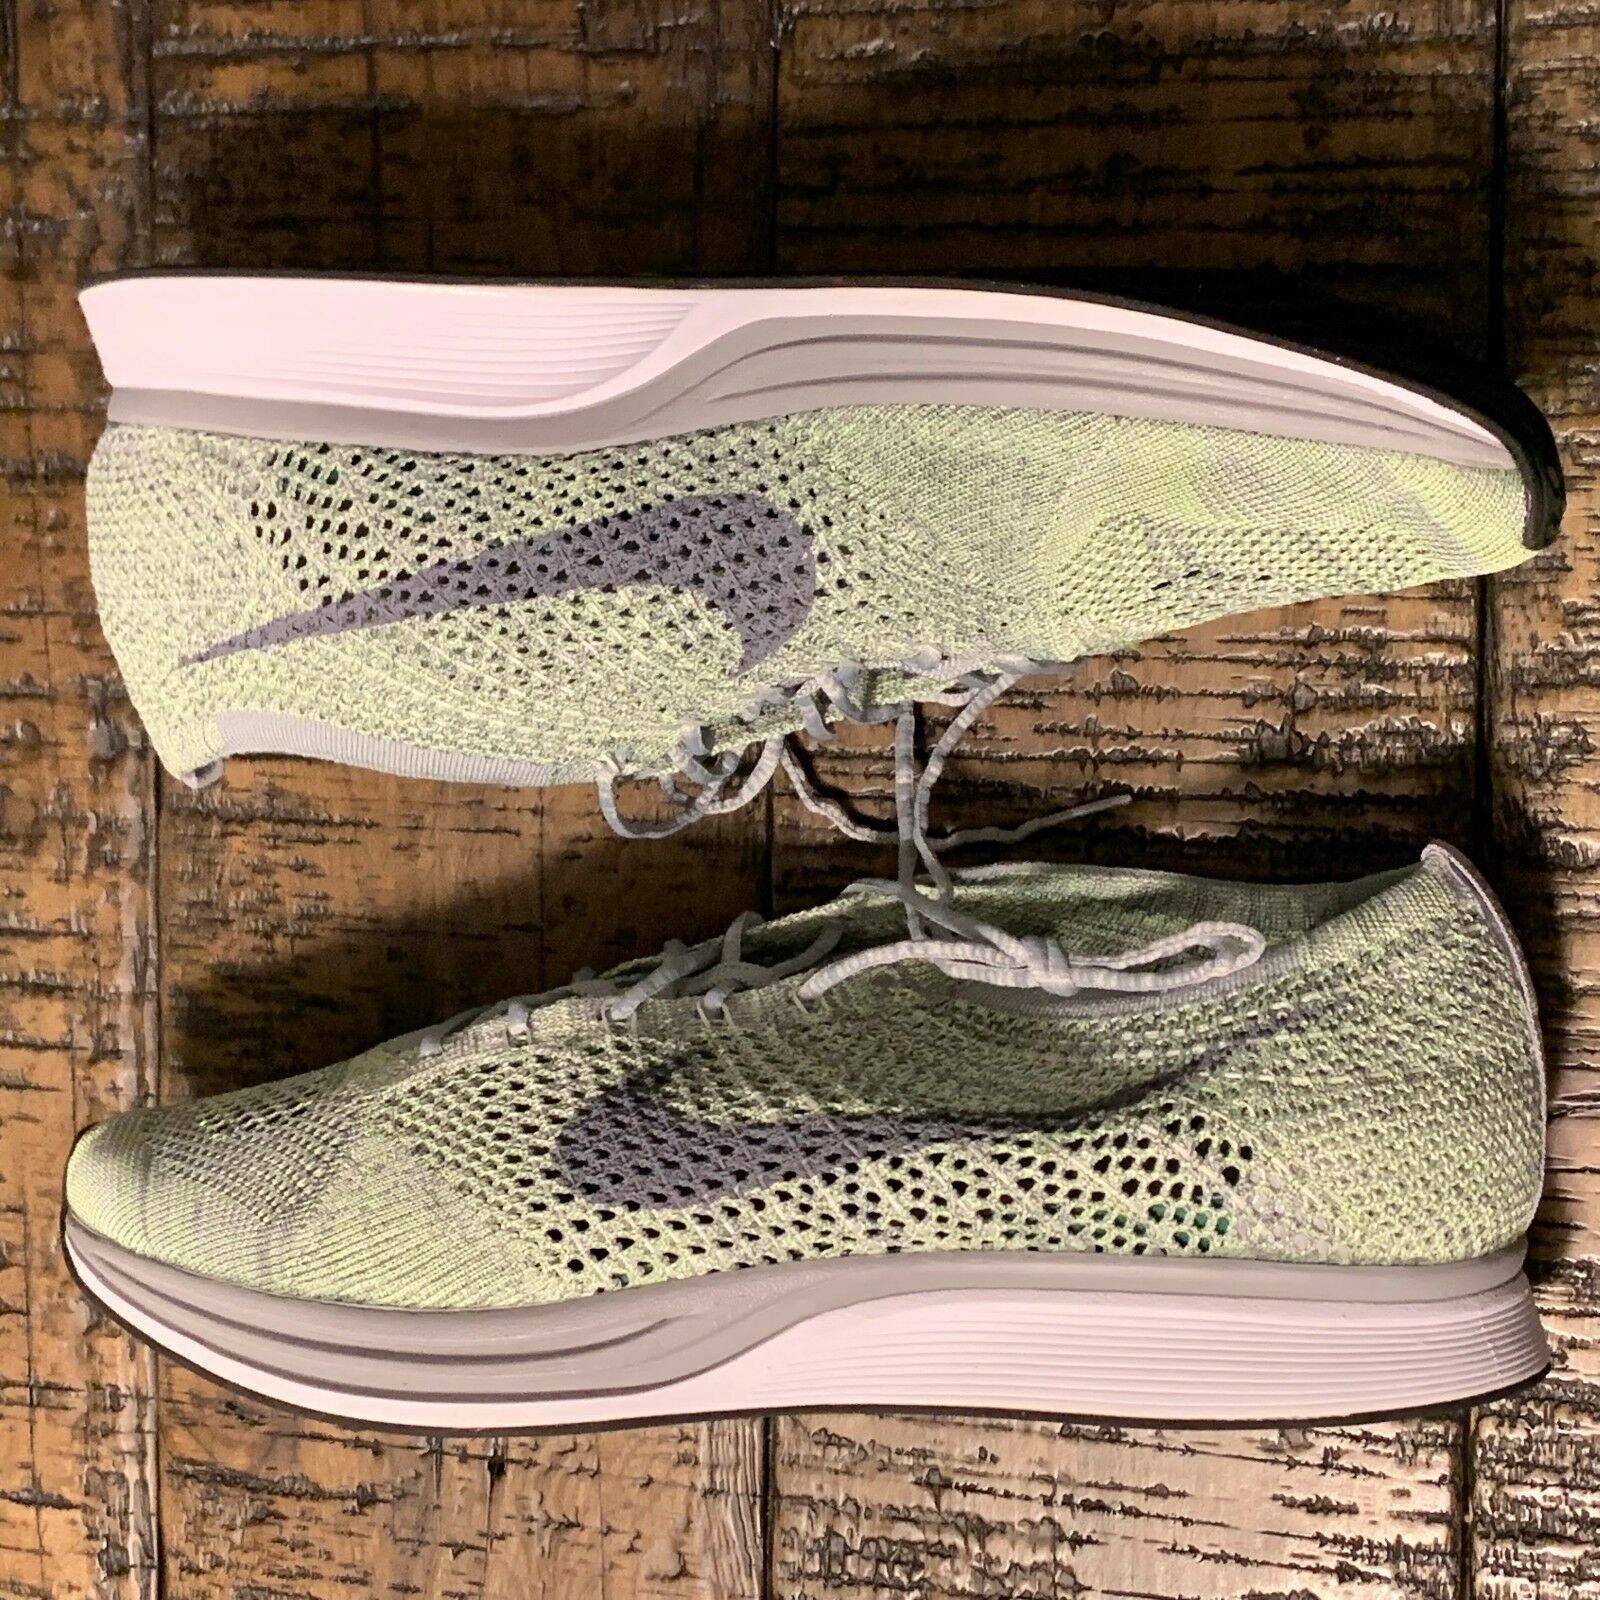 Nike Flyknit Racer Men's Running shoes Ghost Green 526628-103 Size 13 NOBOXTOP